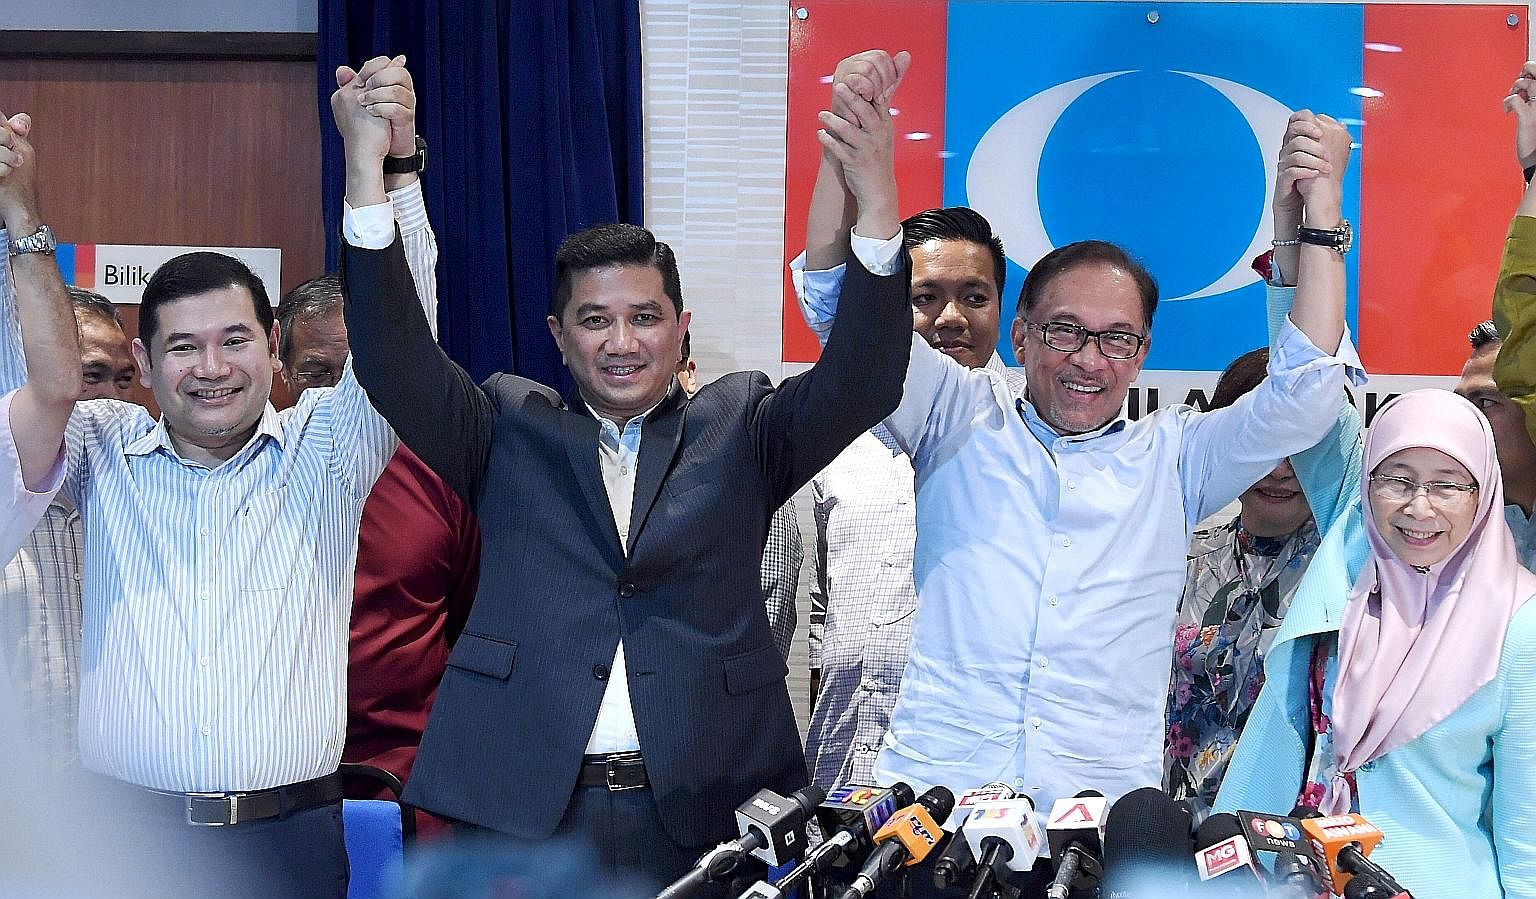 PKR president Anwar Ibrahim and PKR deputy president Azmin Ali, with PKR vice-president Rafizi Ramli (far left) and Mr Anwar's wife, Deputy Prime Minister Wan Azizah Wan Ismail, at a press conference on the Port Dickson by-election at the party's hea